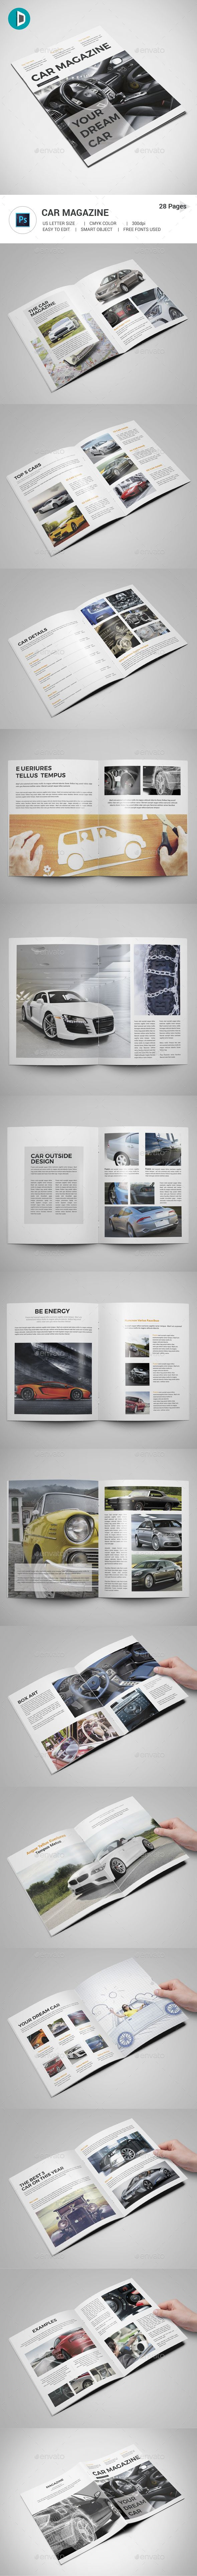 Car Magazine Magazines Print Templates Here Https Graphicriver Item 19452141 S Rank 78 Ref Al Fatih